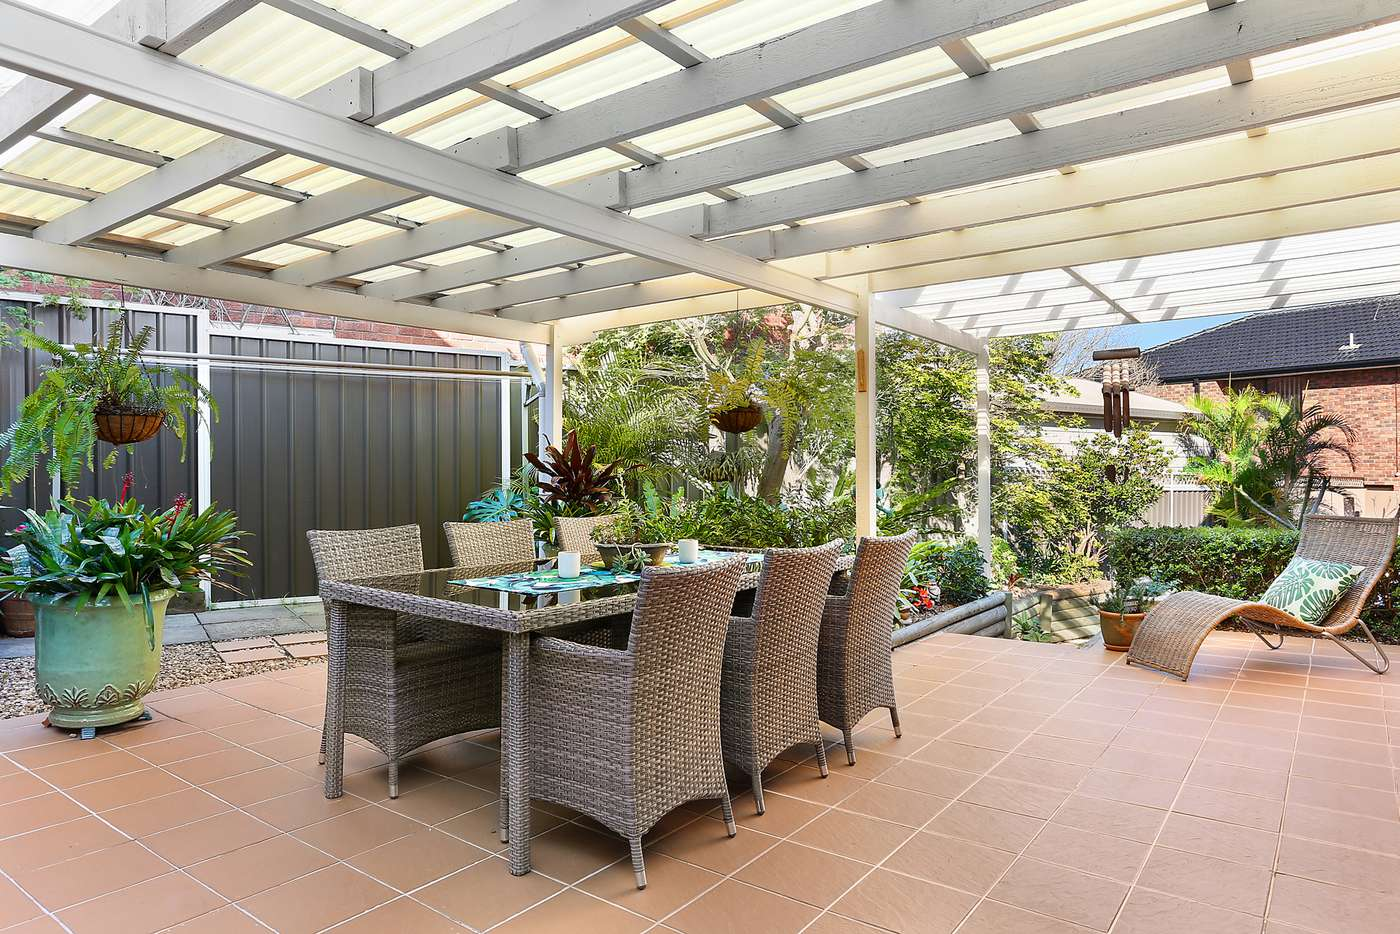 Fifth view of Homely house listing, 19 Linda Avenue, Bass Hill NSW 2197